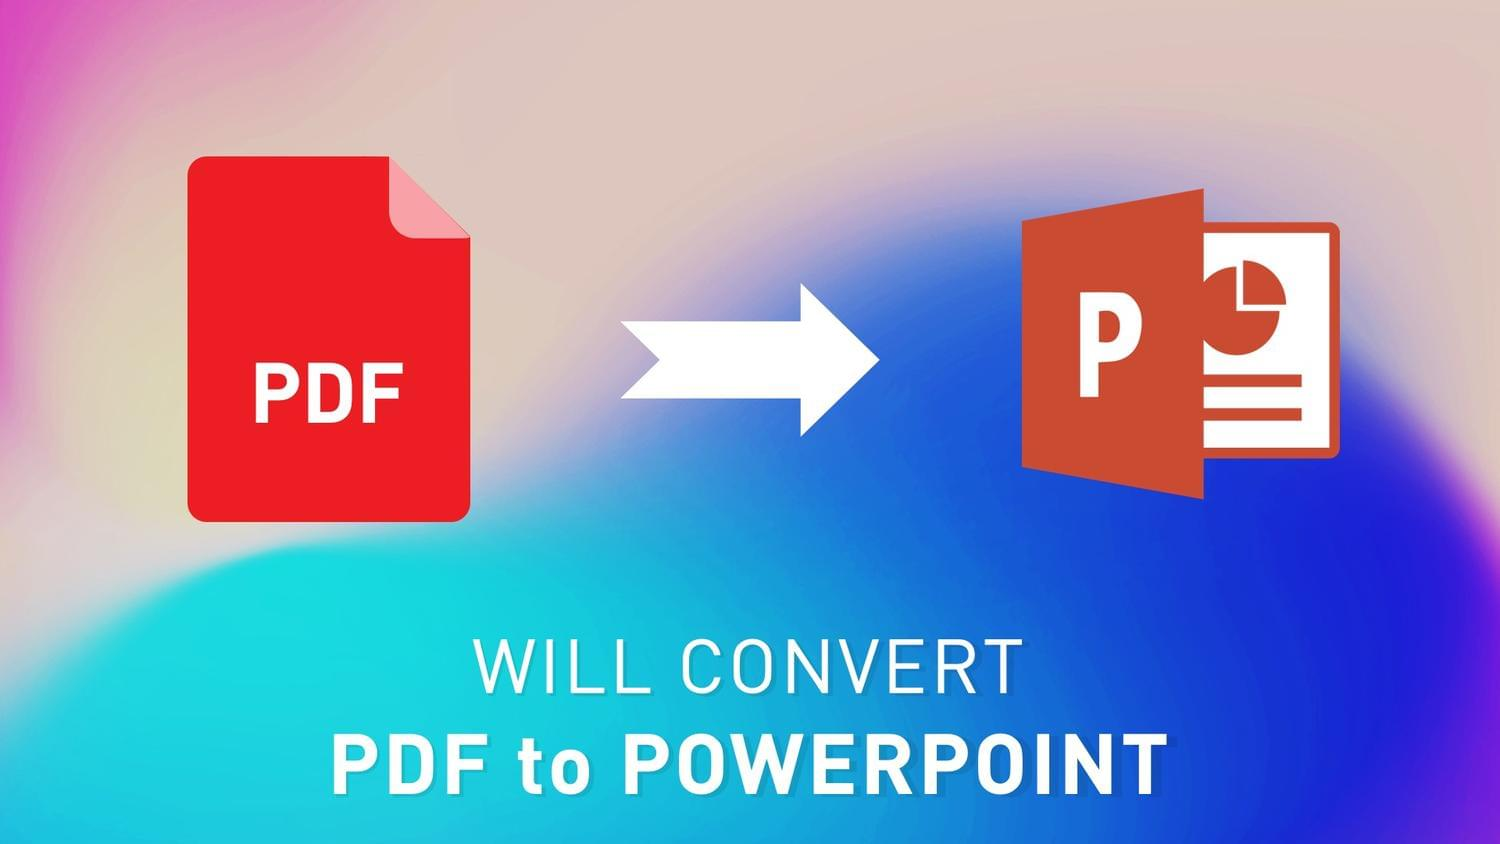 Convert PDF to PowerPoint by arvaone - 115094